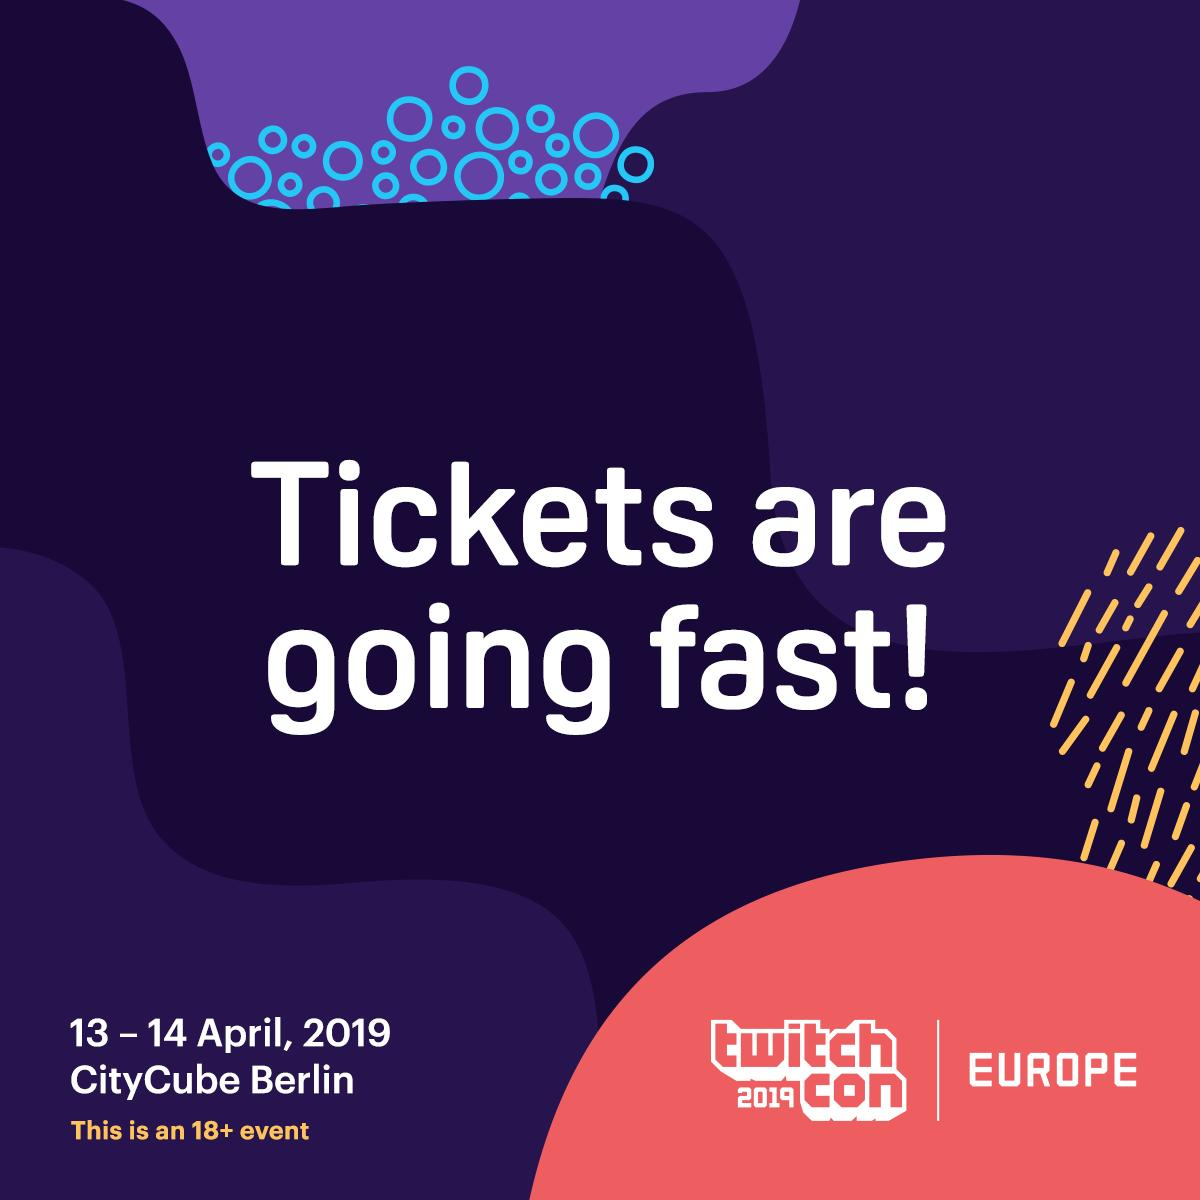 Heads-up: tickets to TwitchCon Europe are going QUICK. If you're planning on joining us in Berlin and don't yet have a ticket, now's your time. We hope to see you there: https://link.twitch.tv/2Im3aOe